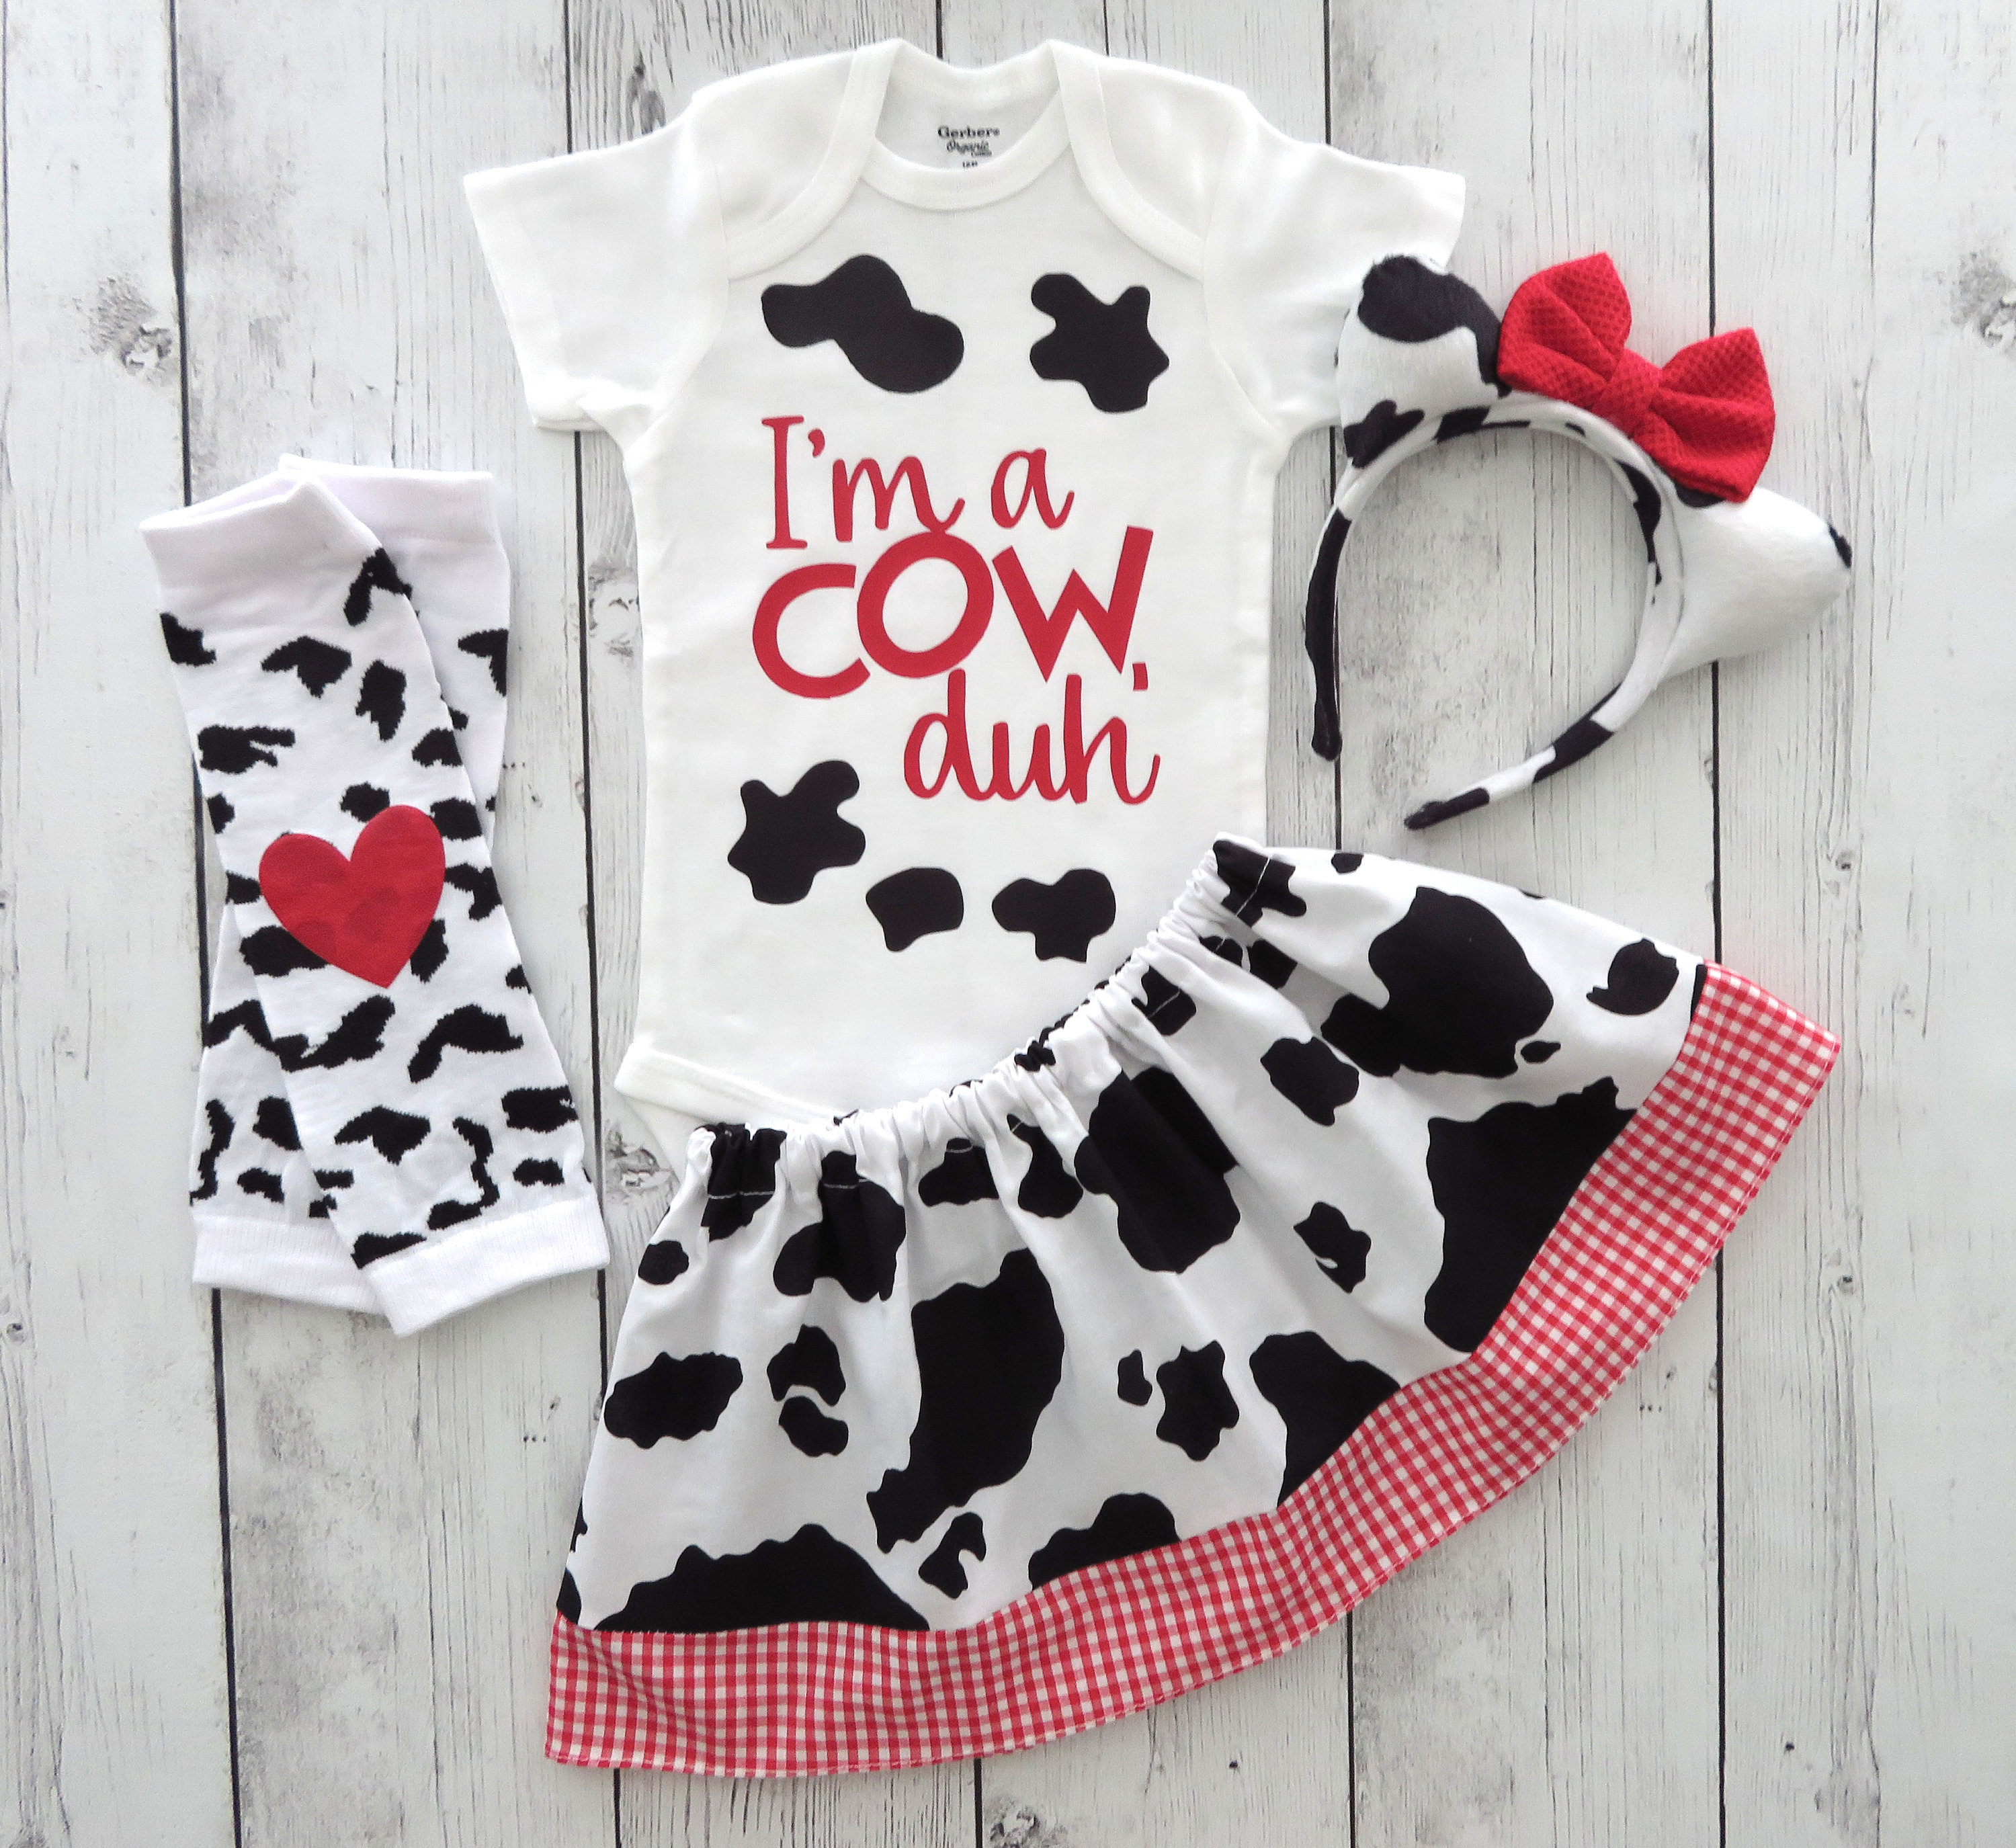 Cow Halloween Costume - toddler halloween costume girl, cute cow, first halloween, cow ears headband, cow costume, comfortable costume (COPY)